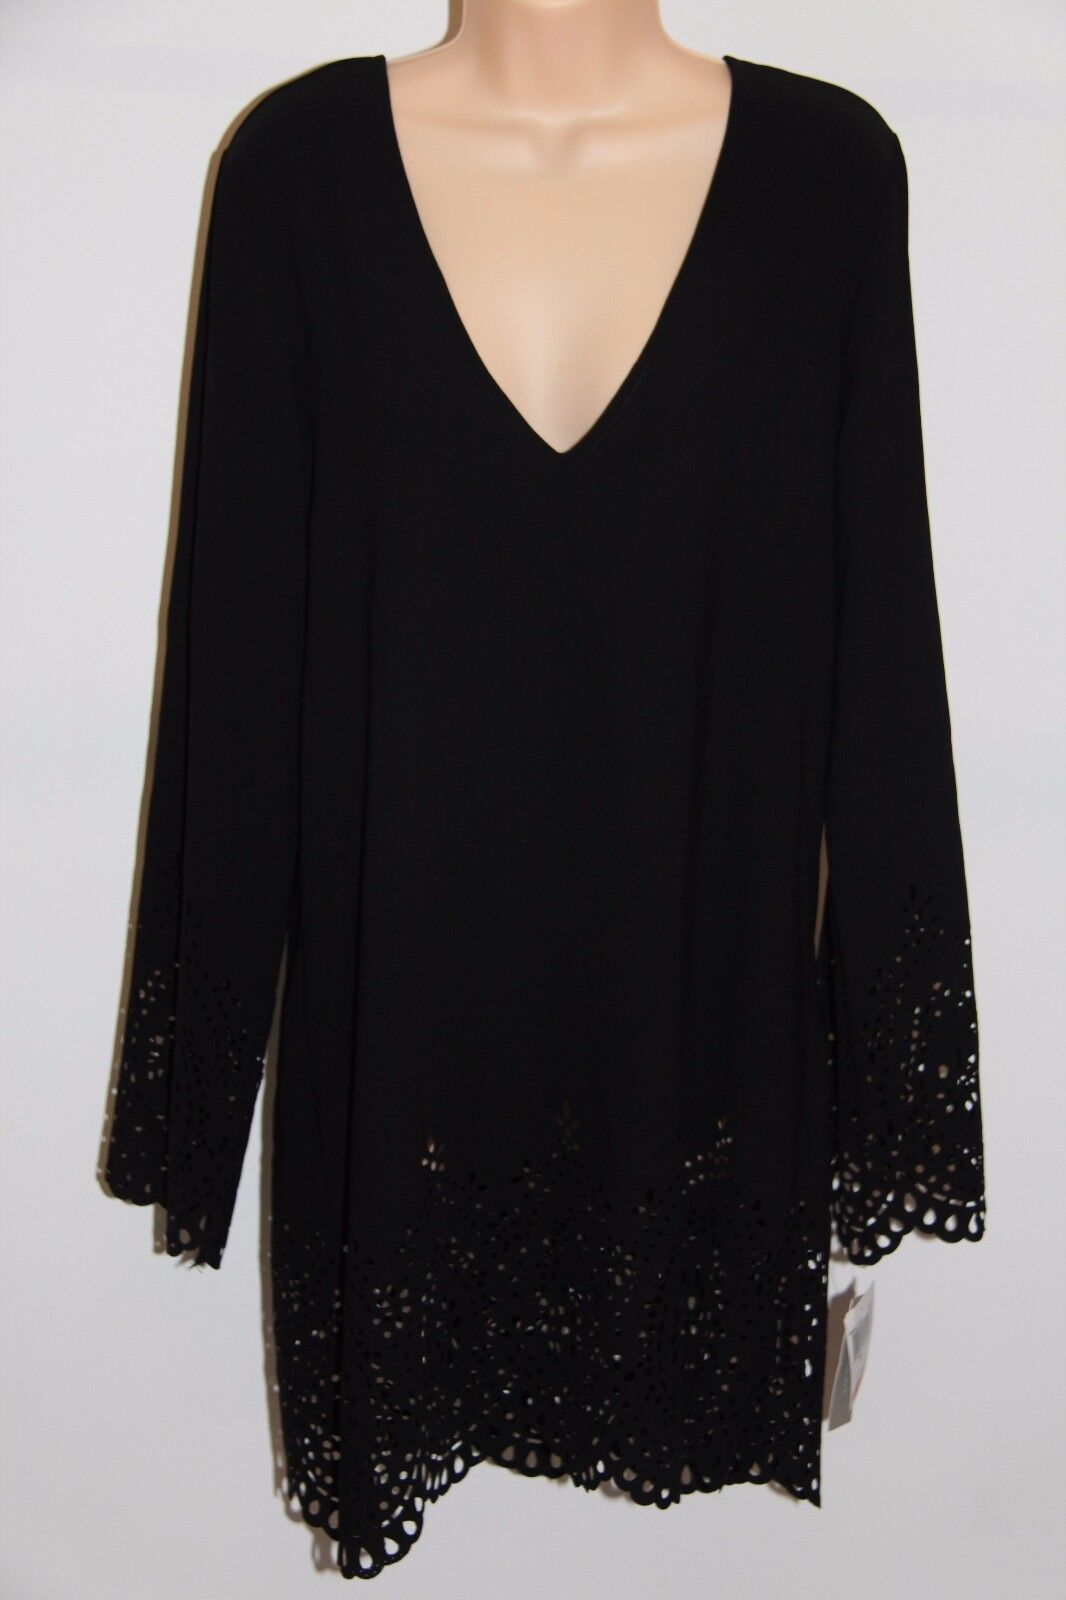 NWT Kenneth Cole Swimsuit Cover Up Dress Sz M BLK  Long sleeve